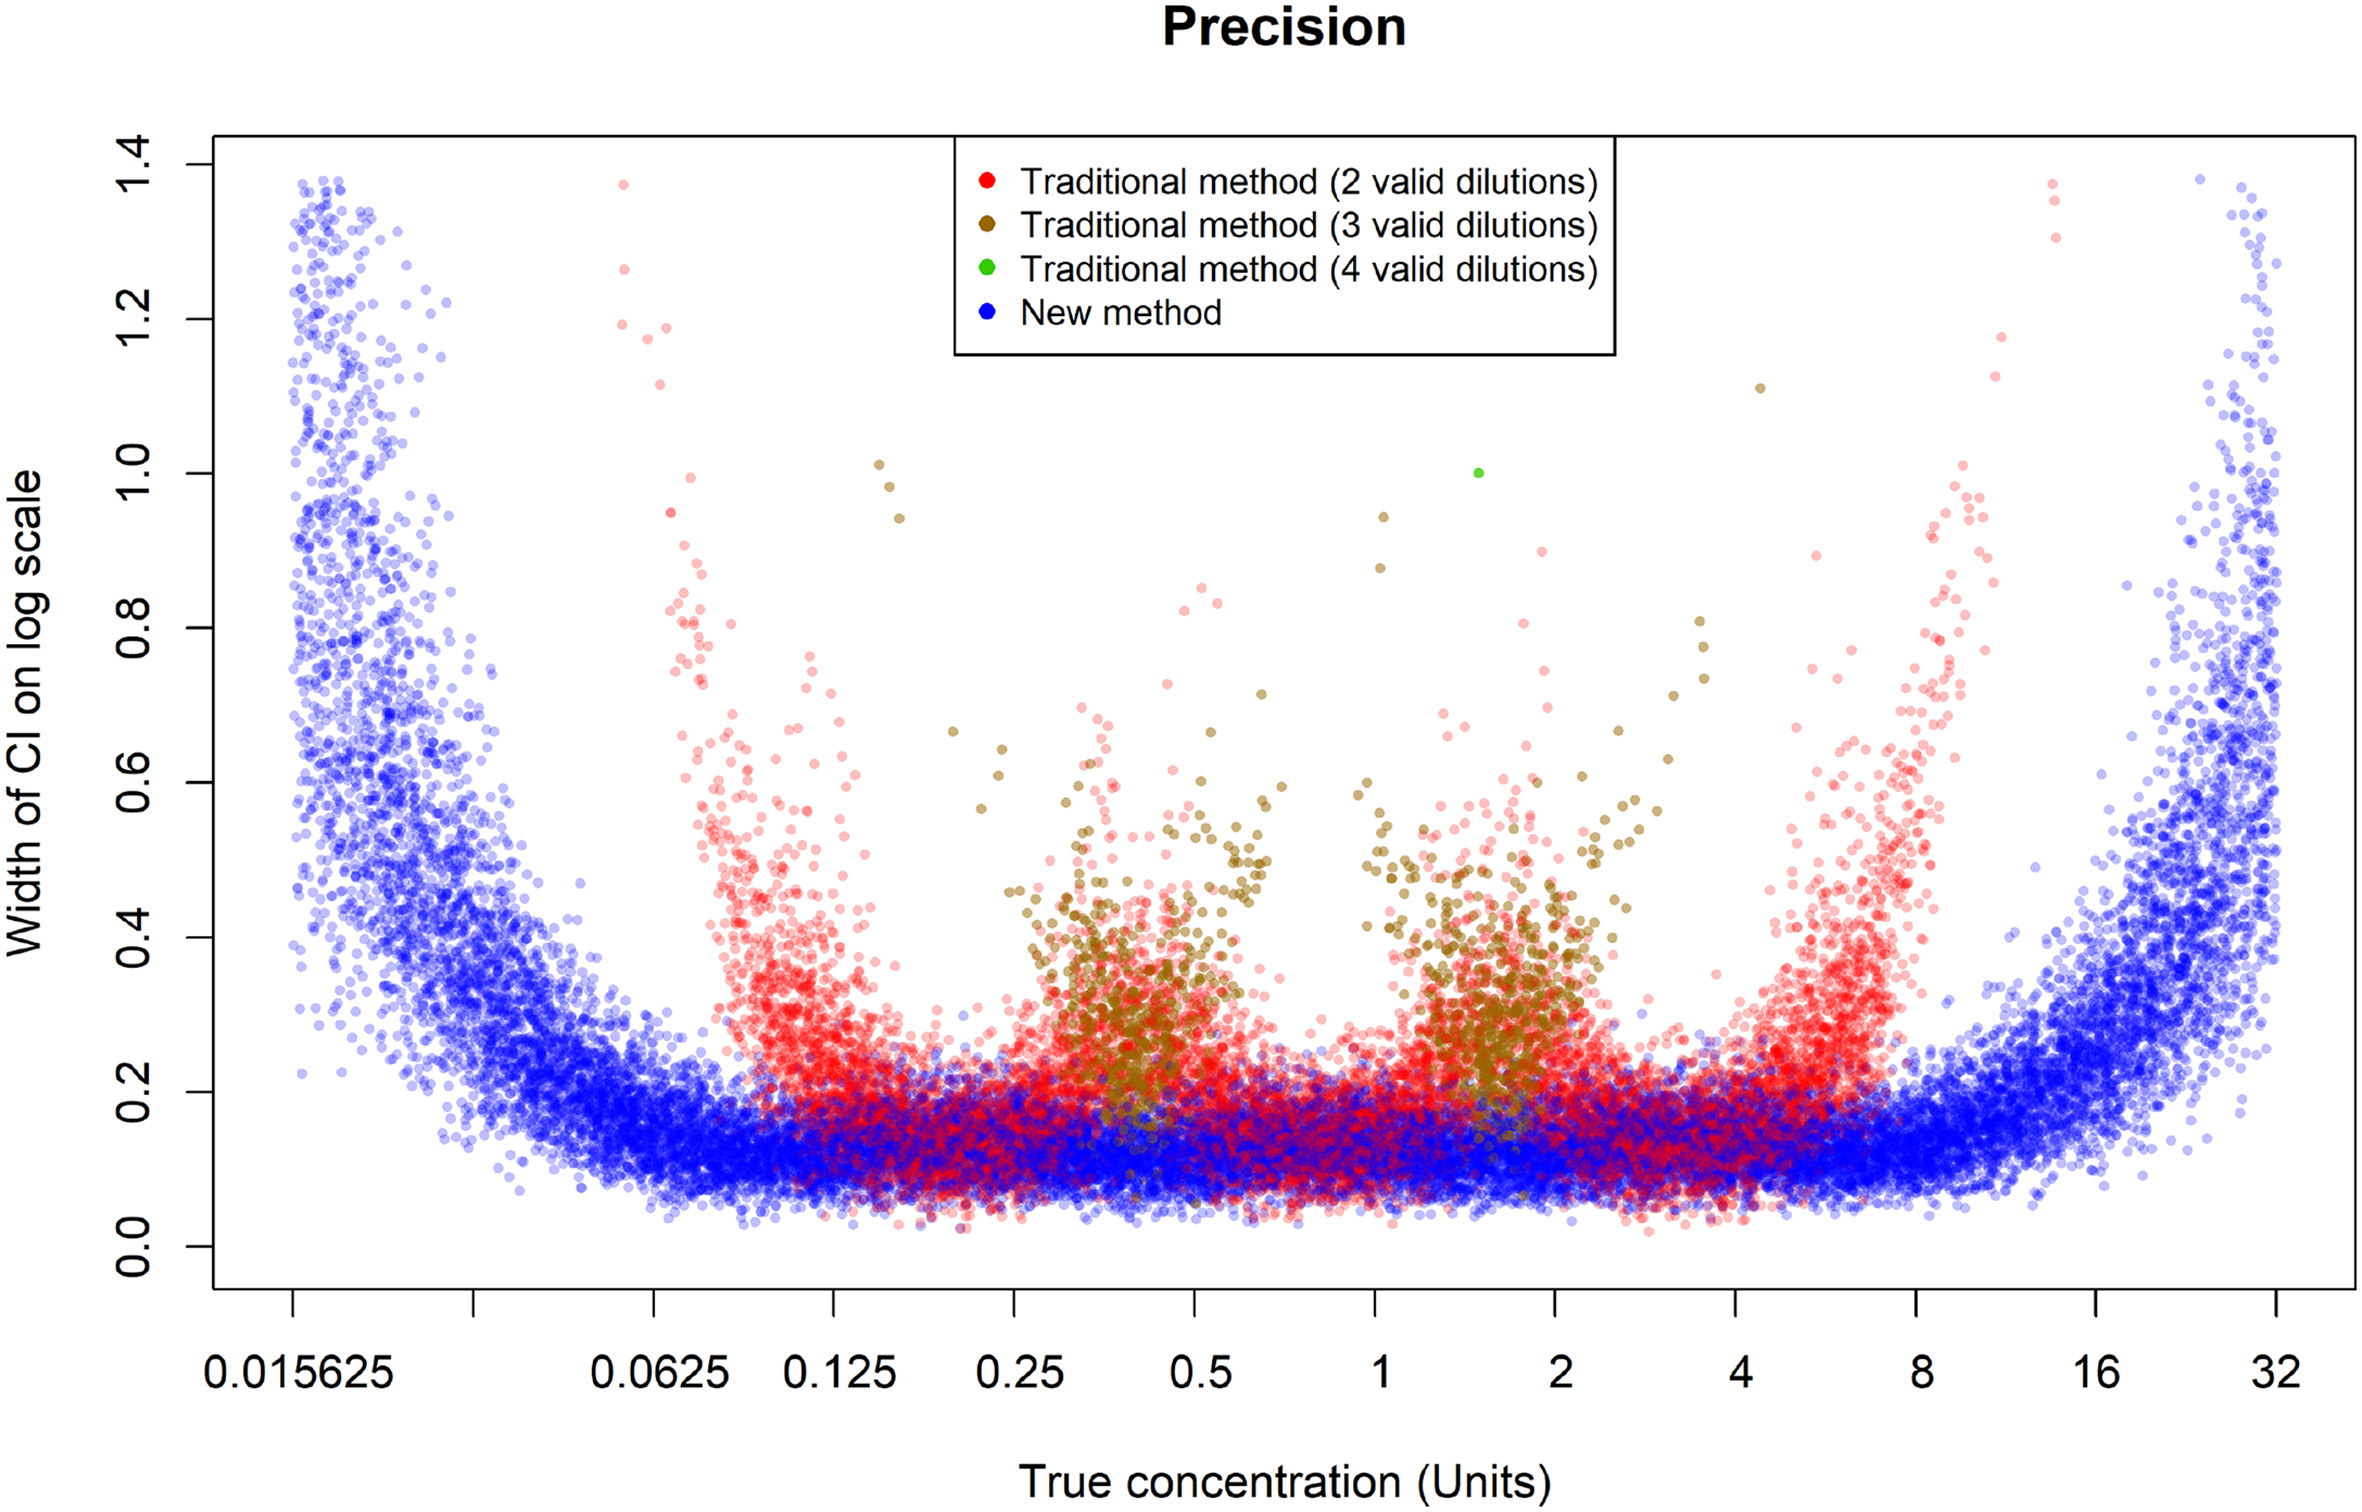 Precision for the two methods for the simulated assays